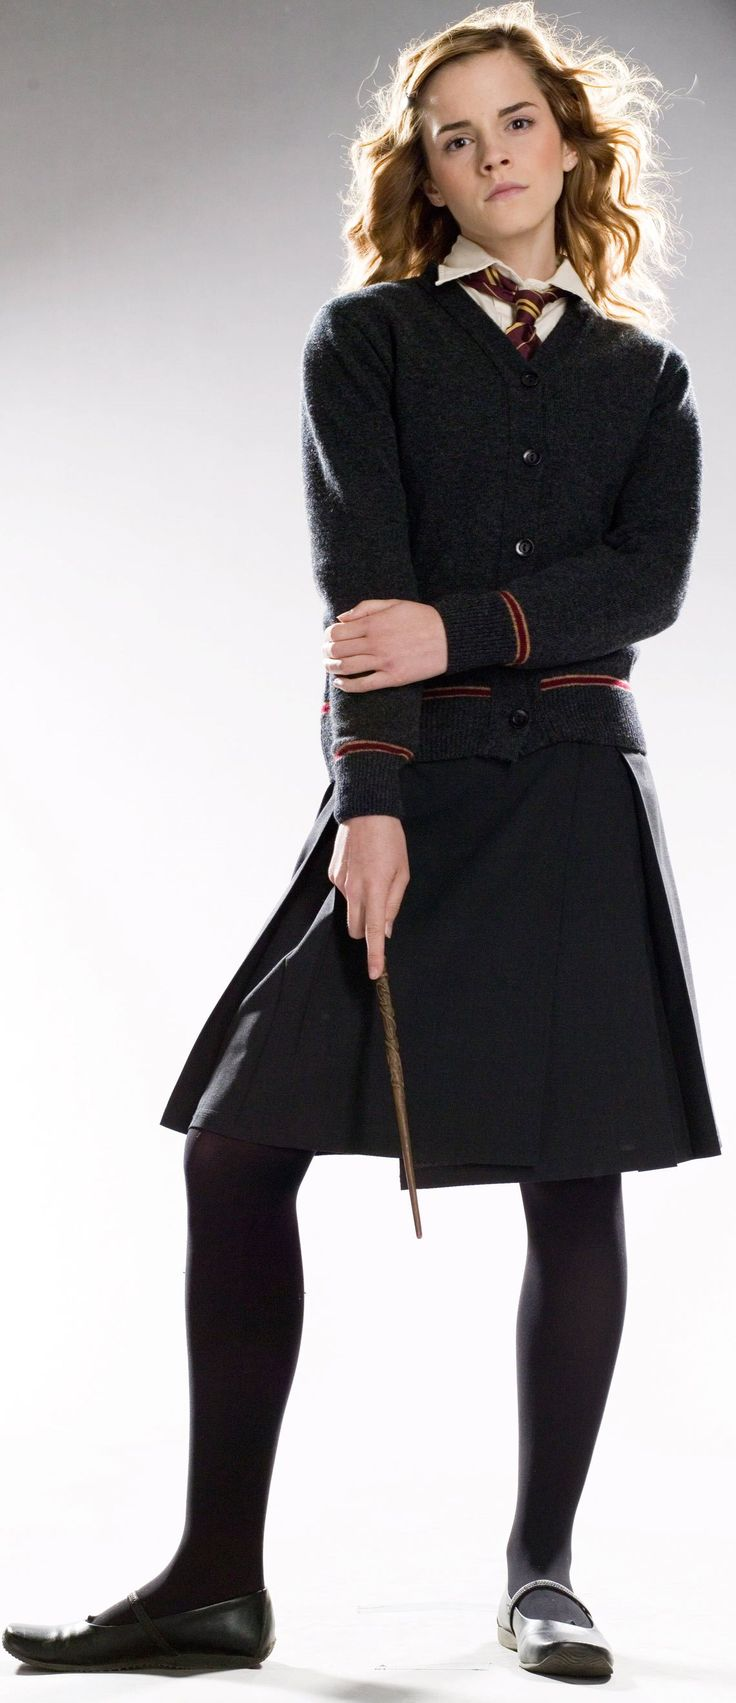 Harry Potter Girl Outfit